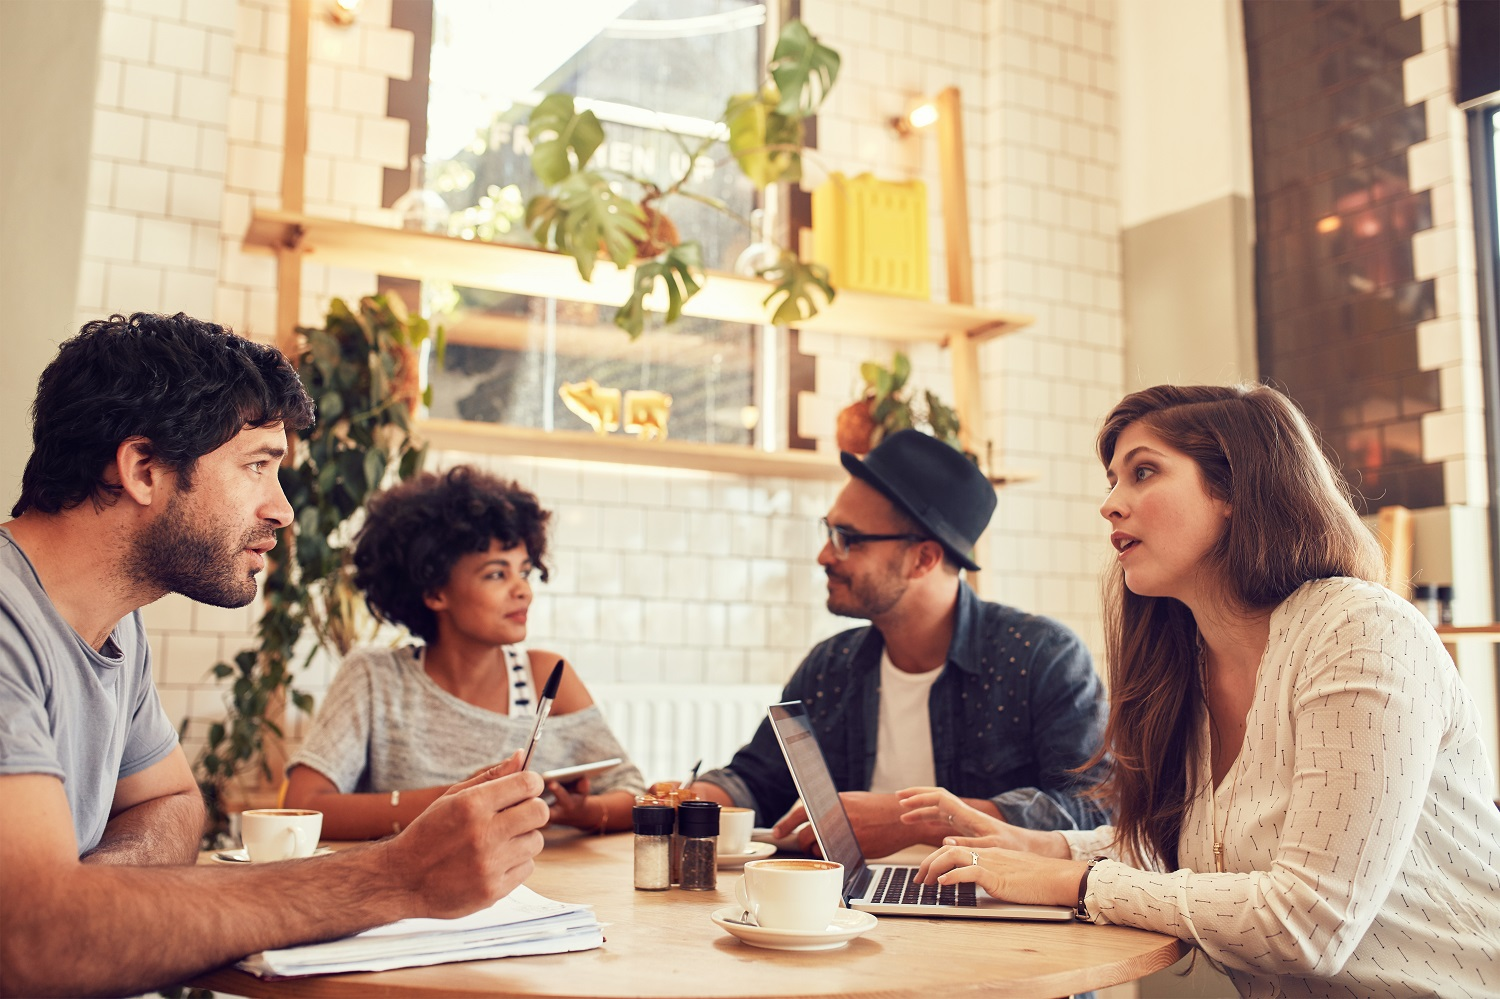 Portrait of young people sitting in a coffee shop with laptop and talking. Young men and women discussing business ideas at a cafe.